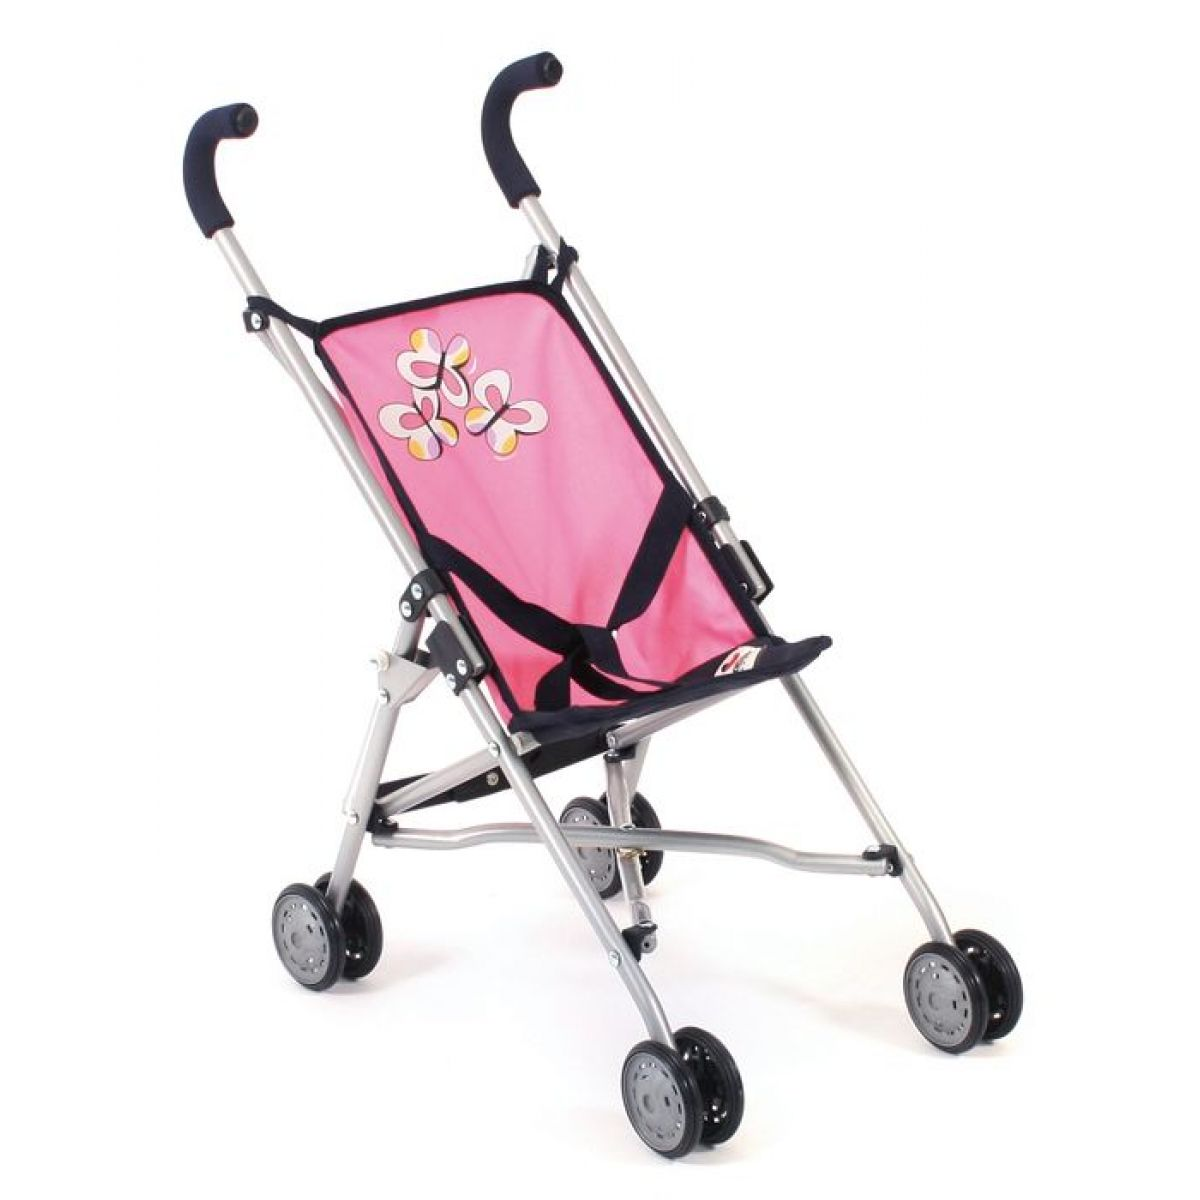 BAYER CHIC 2000 - 60146 - Golfky MINI BUGGY ROMA - Pink Checker